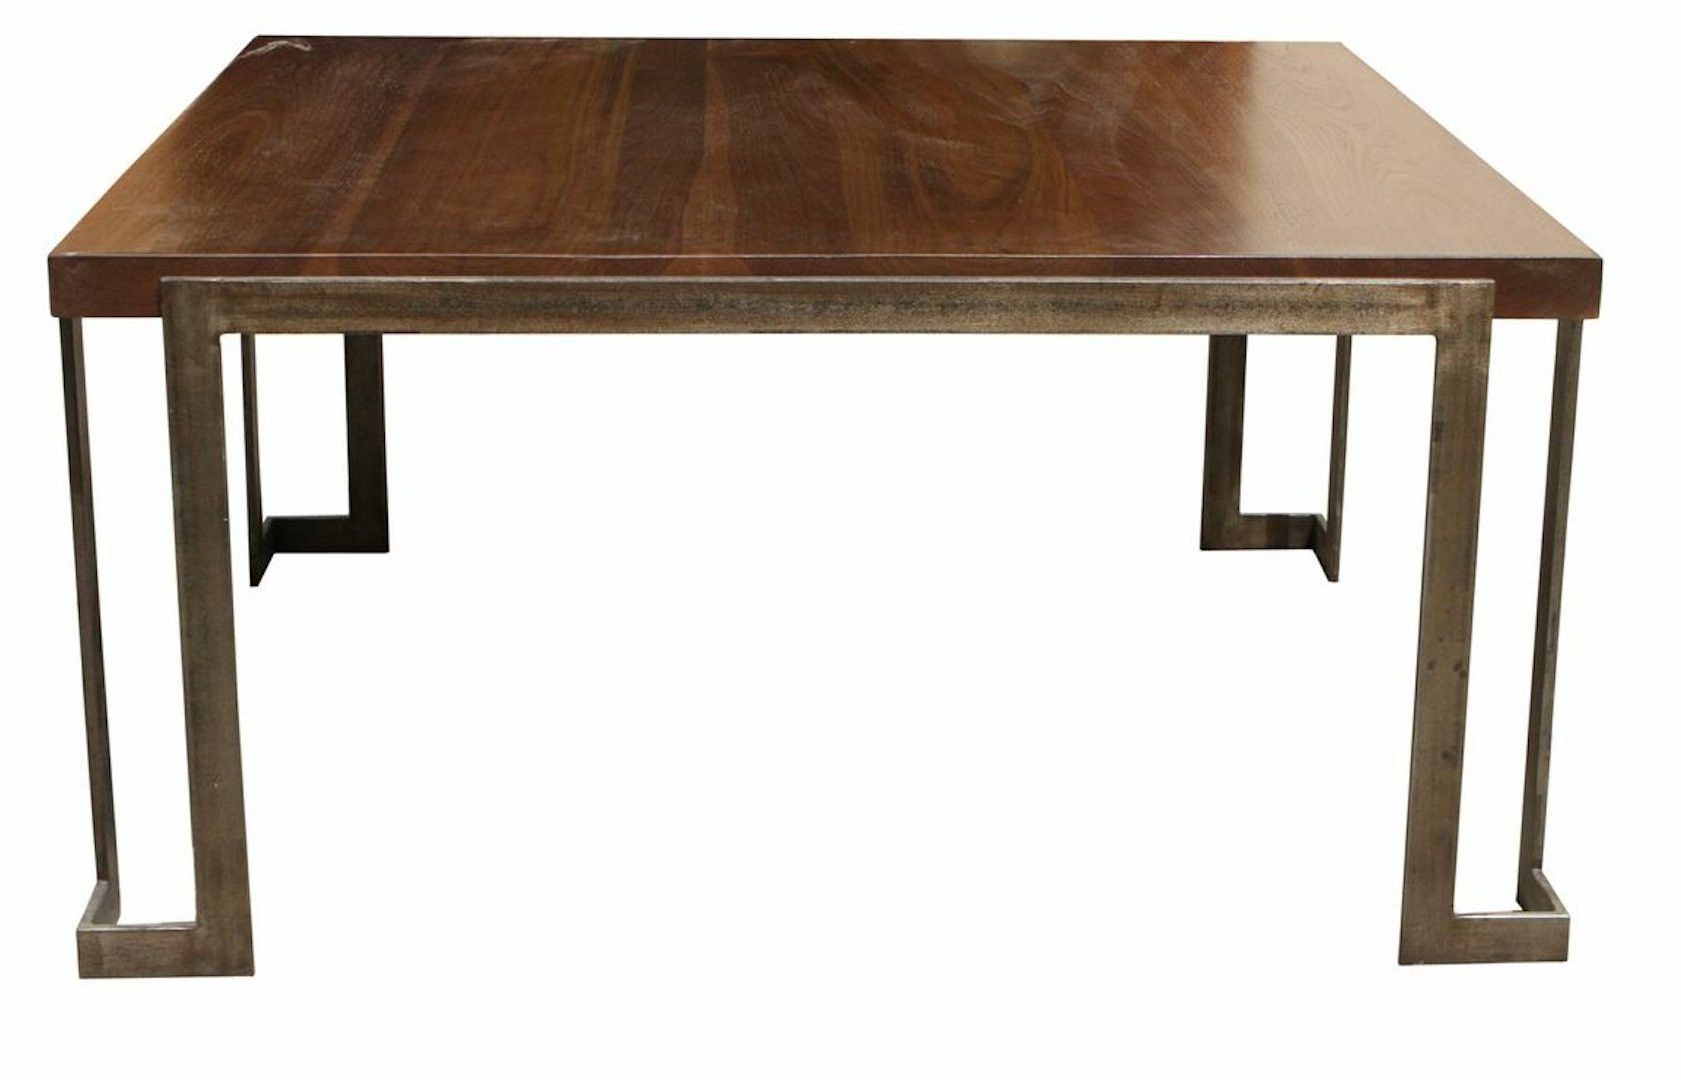 Modern Metal And Wood Coffee Table Table Wood Modern